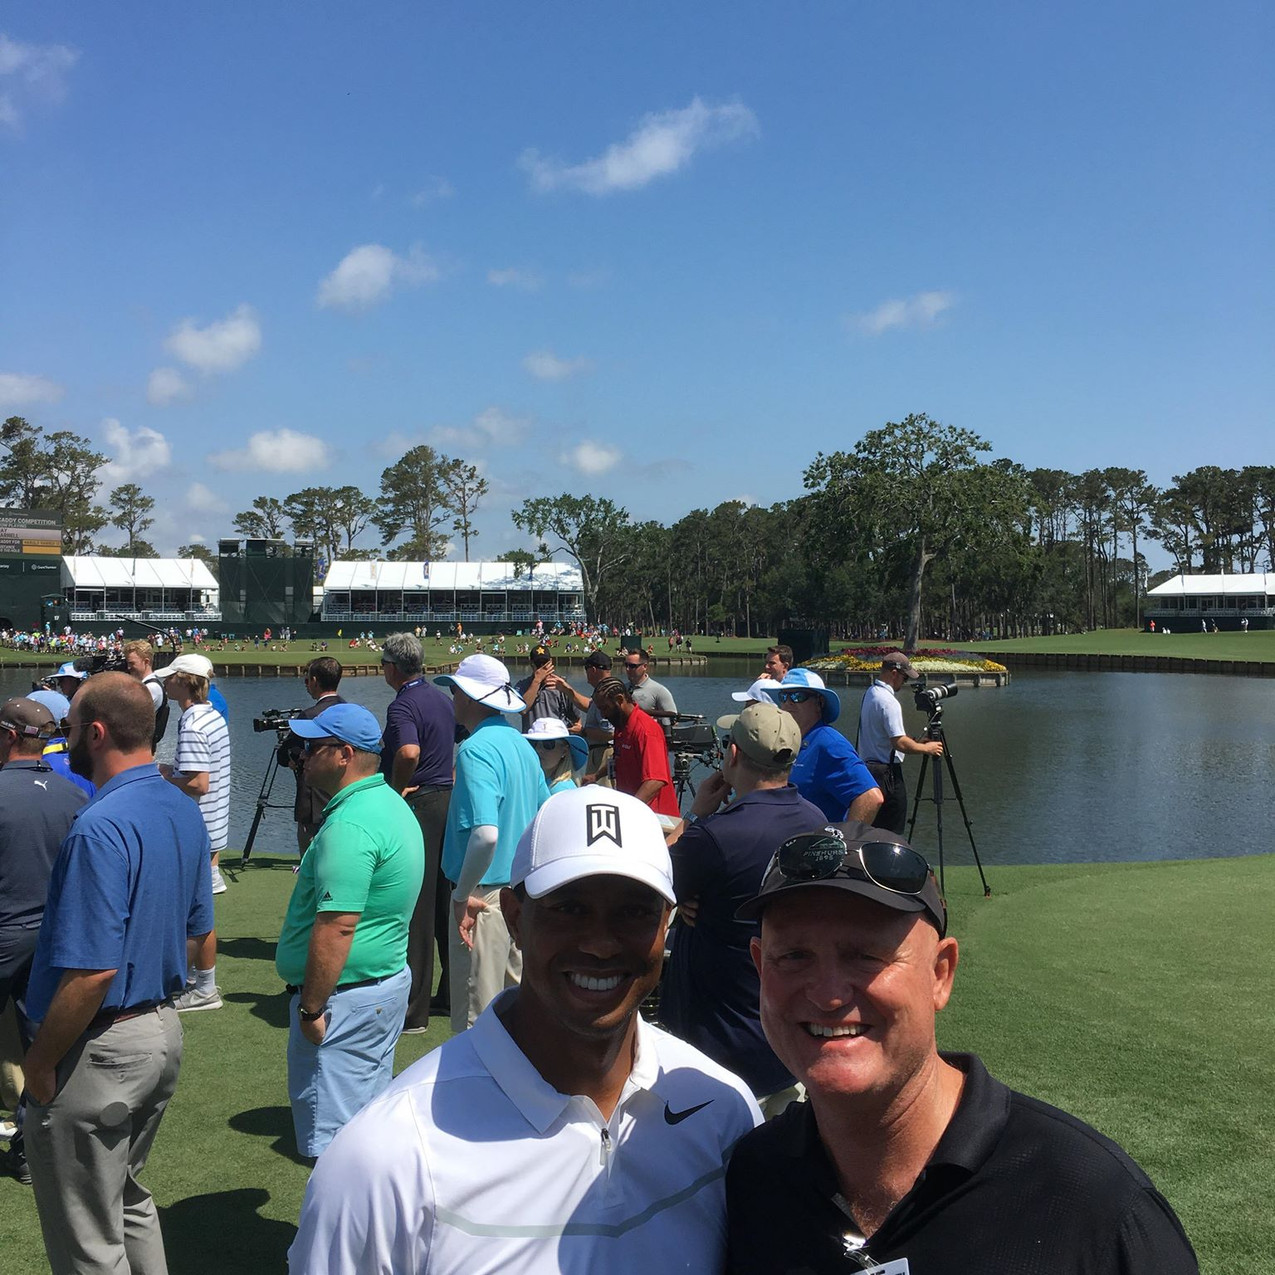 Mike and Tiger